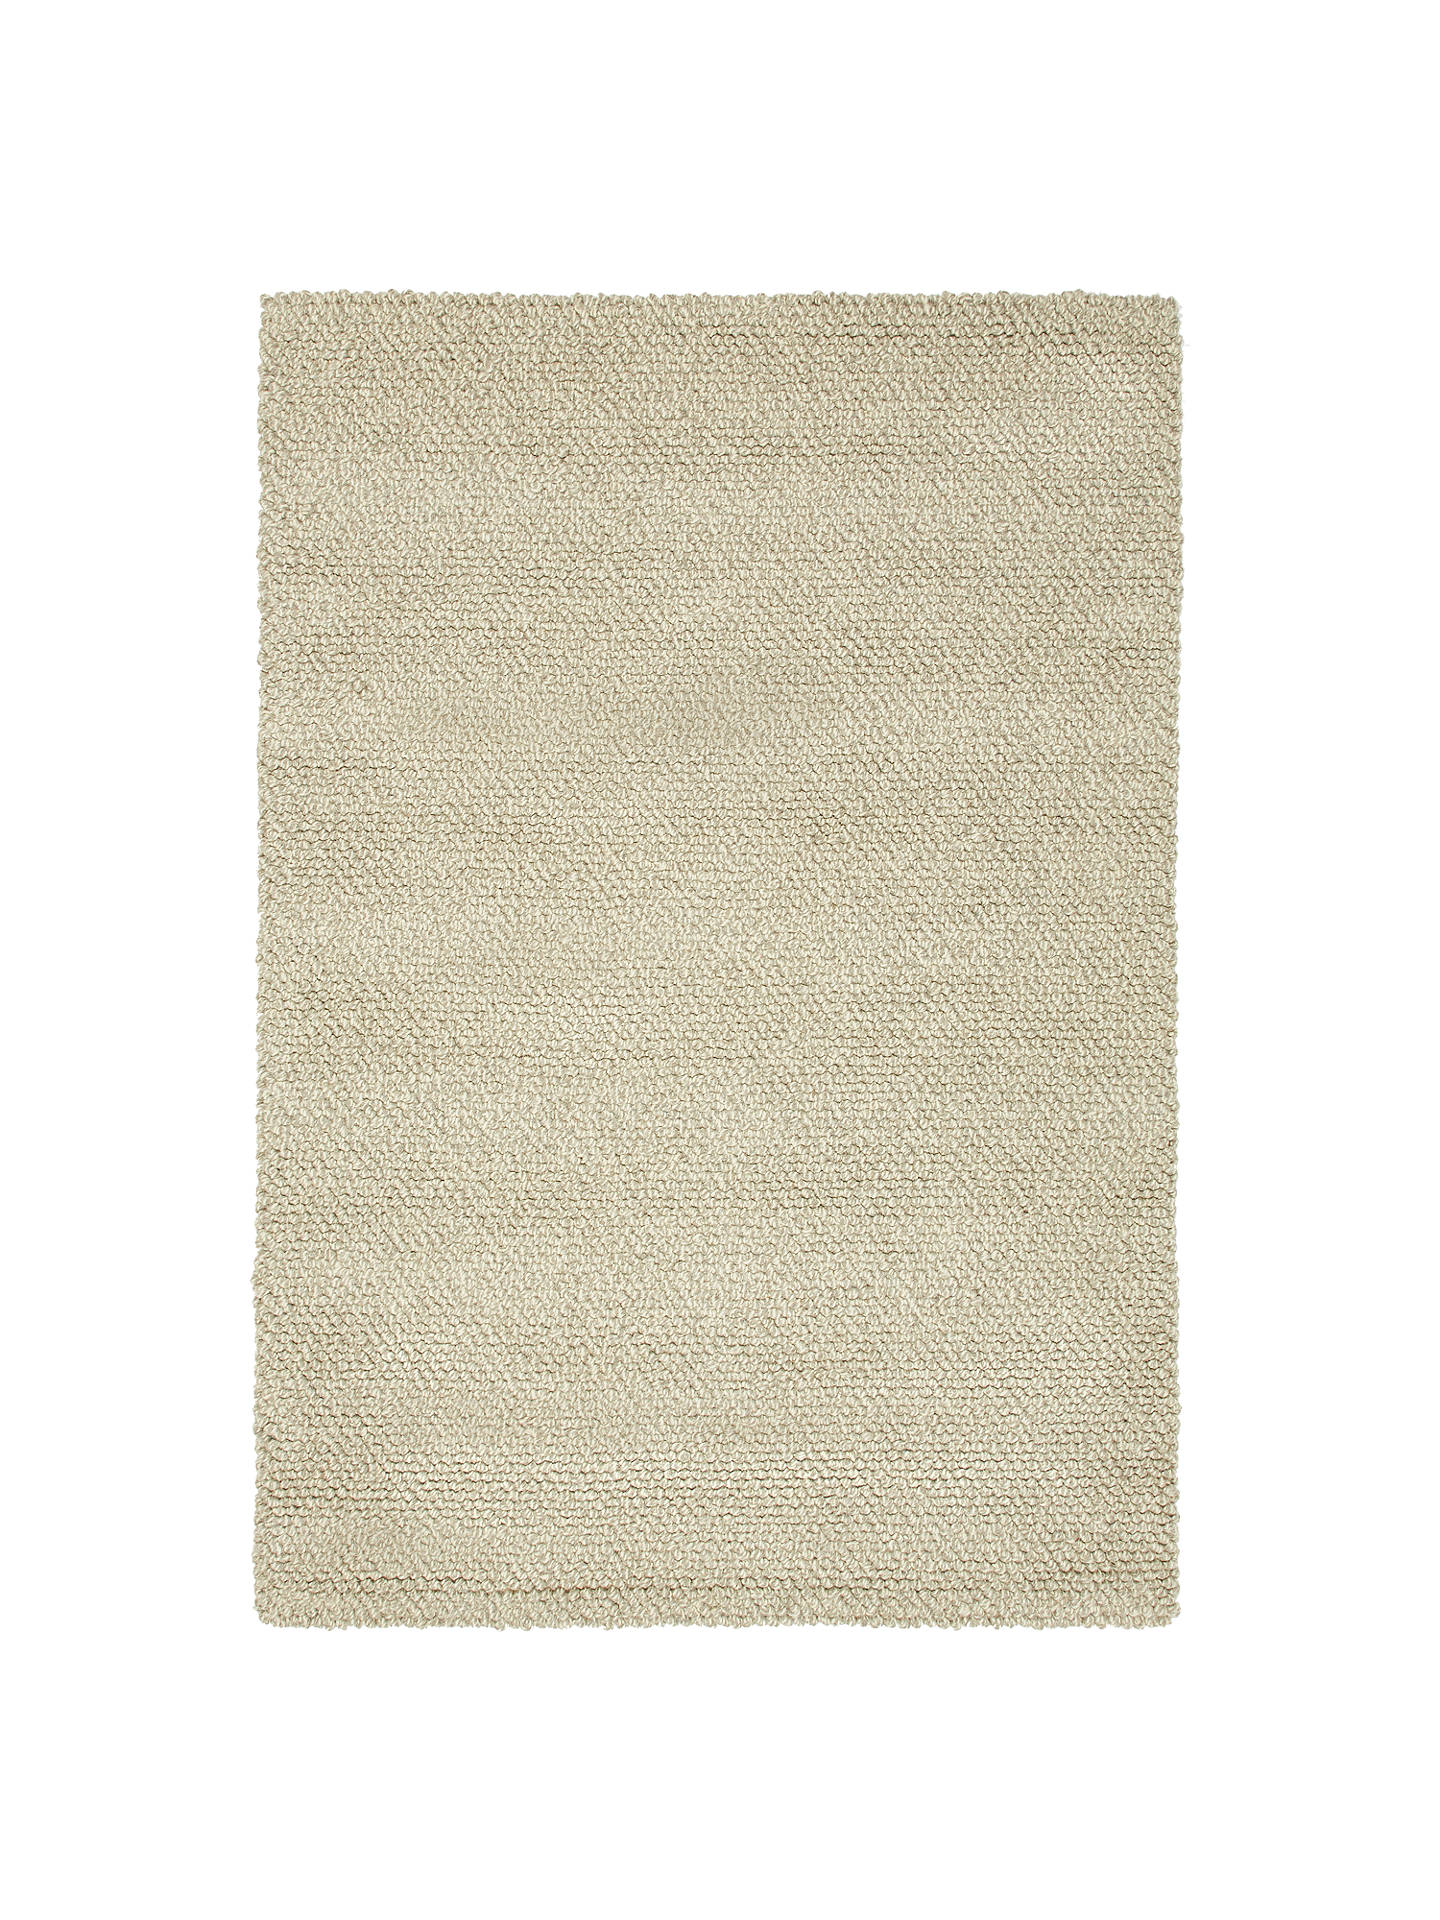 BuyJohn Lewis & Partners Kintra Rug, Natural, L240 x W170cm Online at johnlewis.com